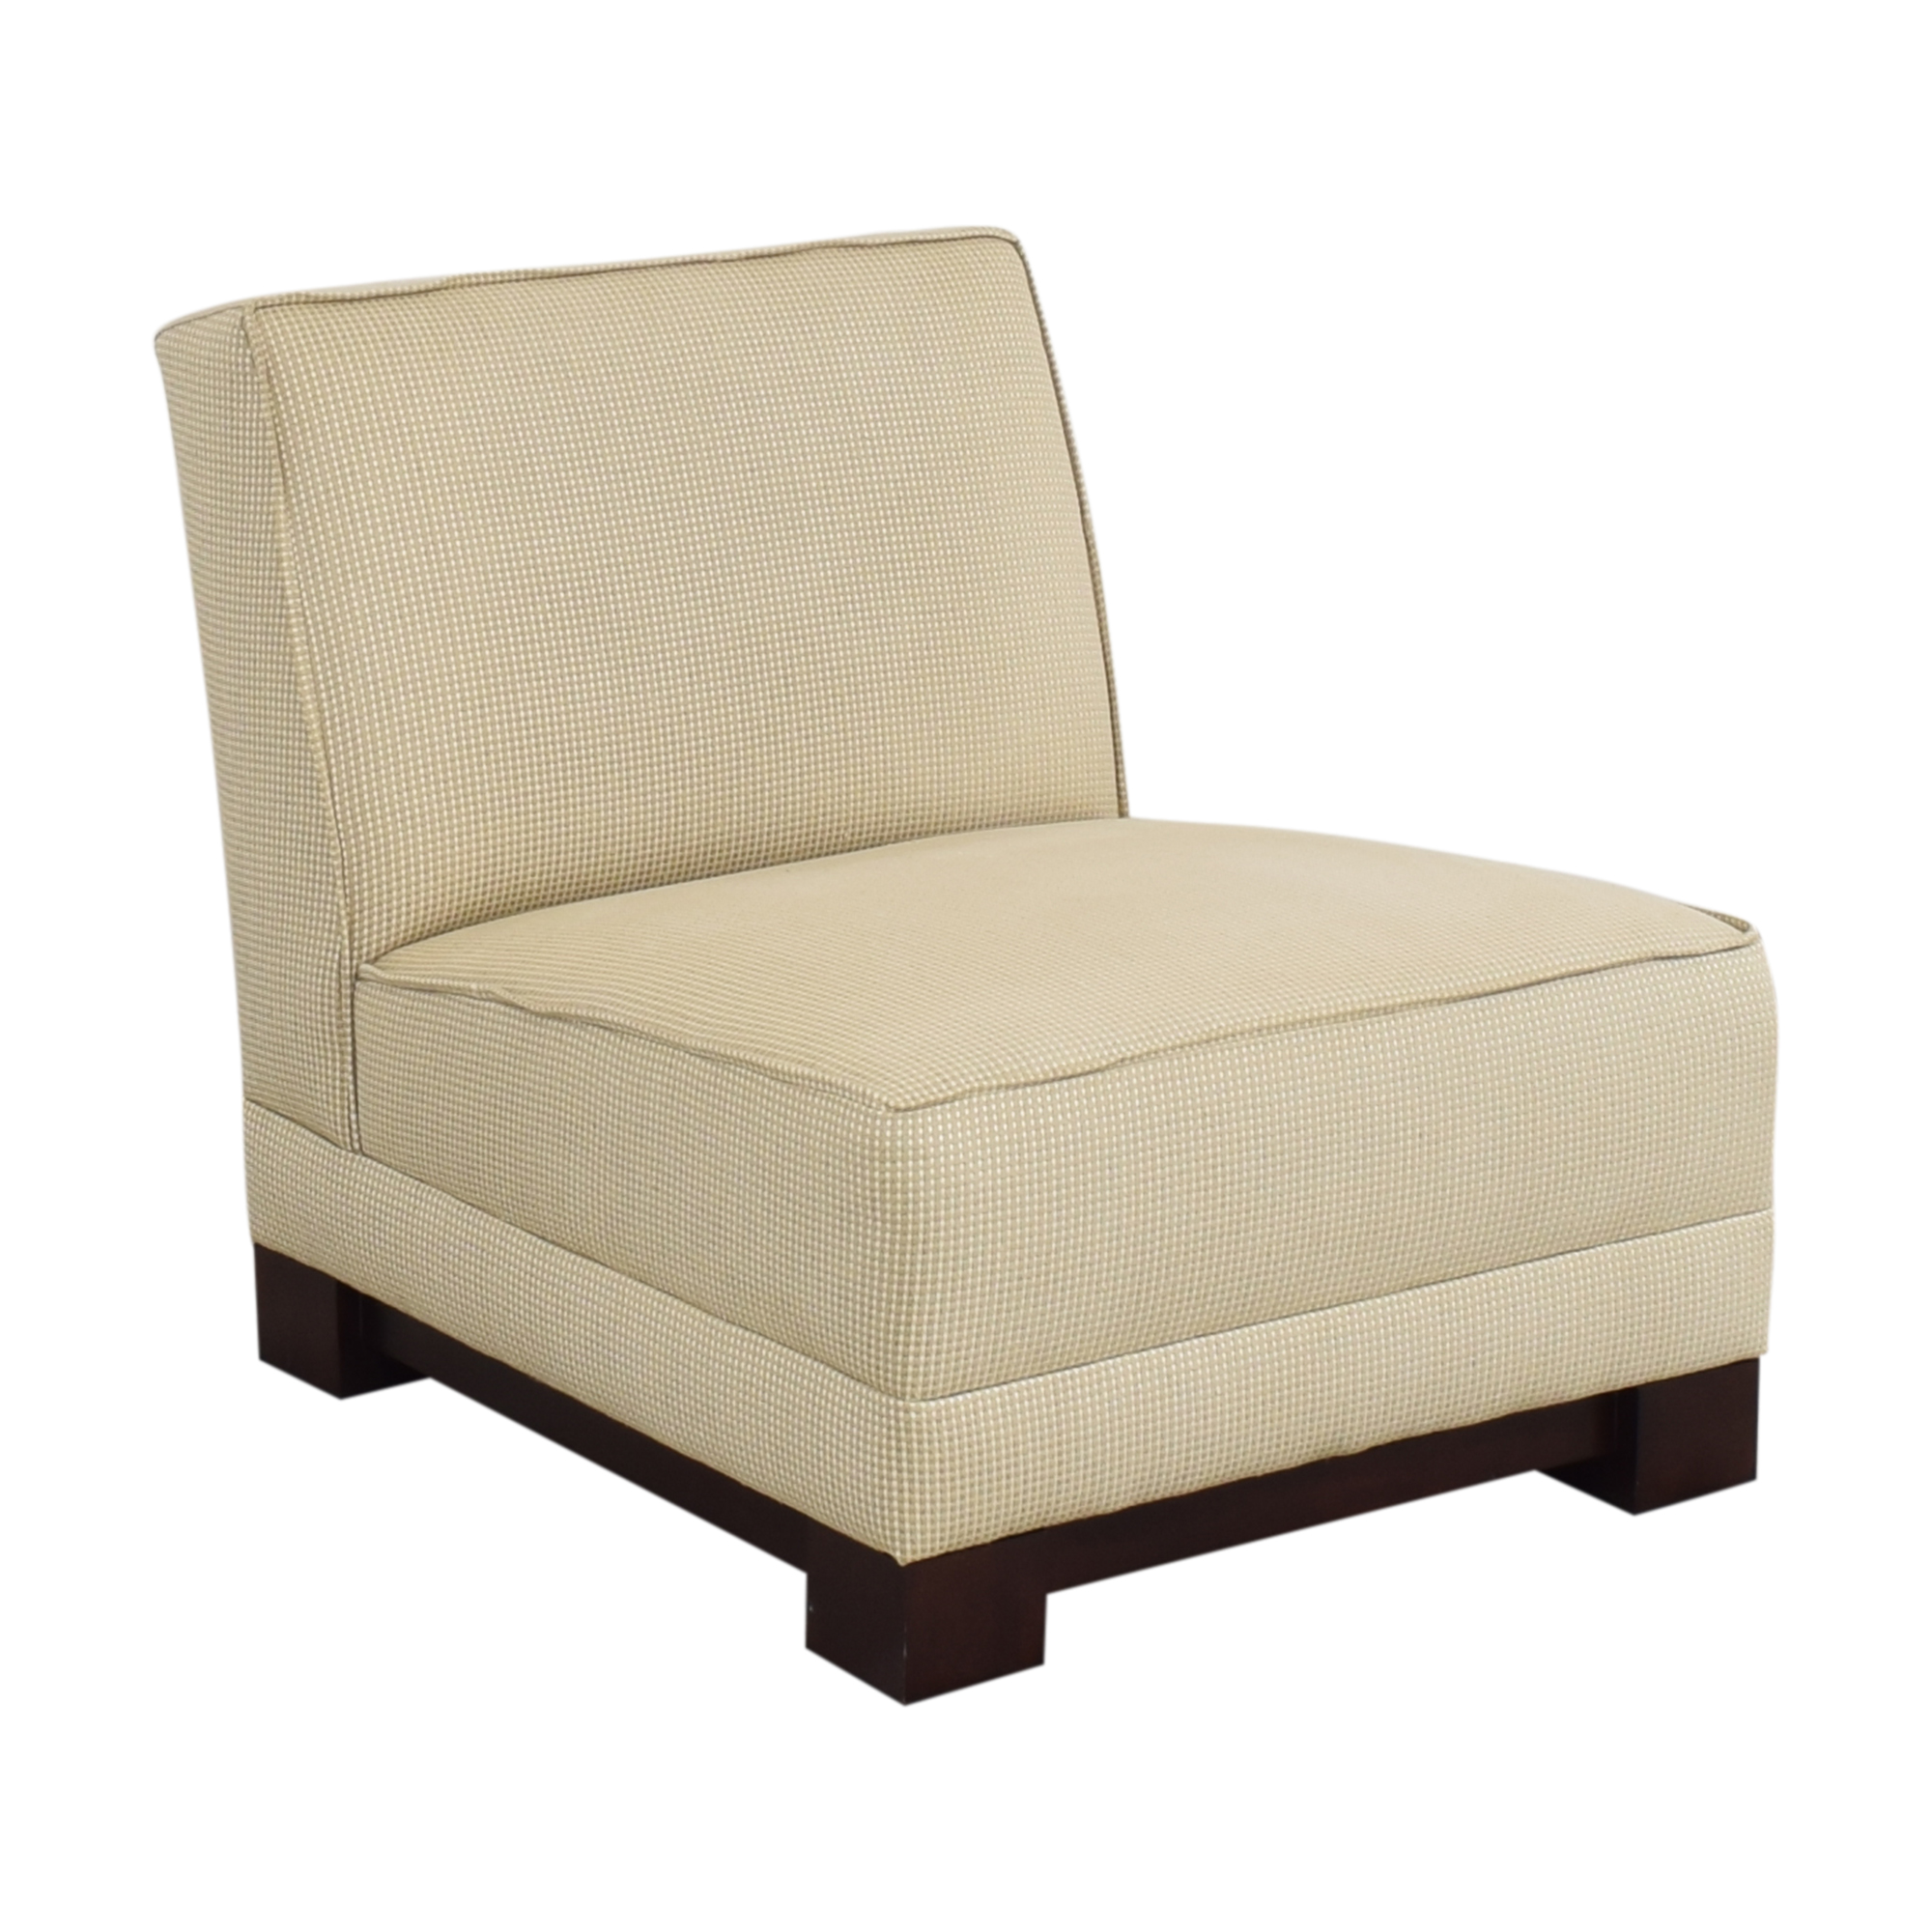 Ralph Lauren Home Hasley Slipper Chair with Ottoman / Accent Chairs